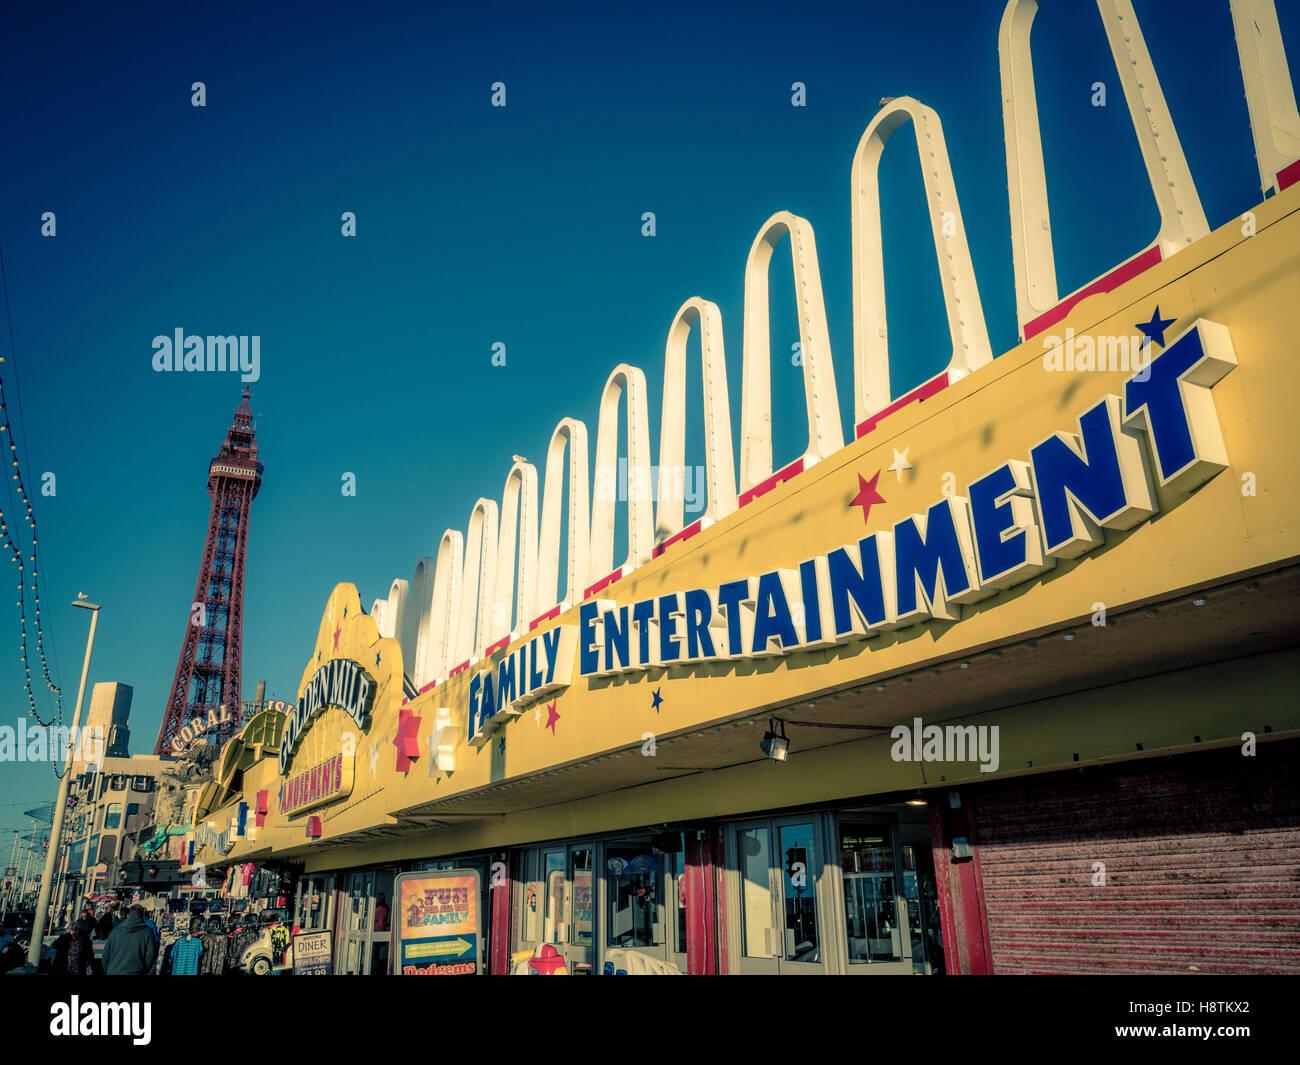 Golden Mile Family Entertainment Amusement Arcade sign on seafront, Blackpool, Lancashire, UK. - Stock Image